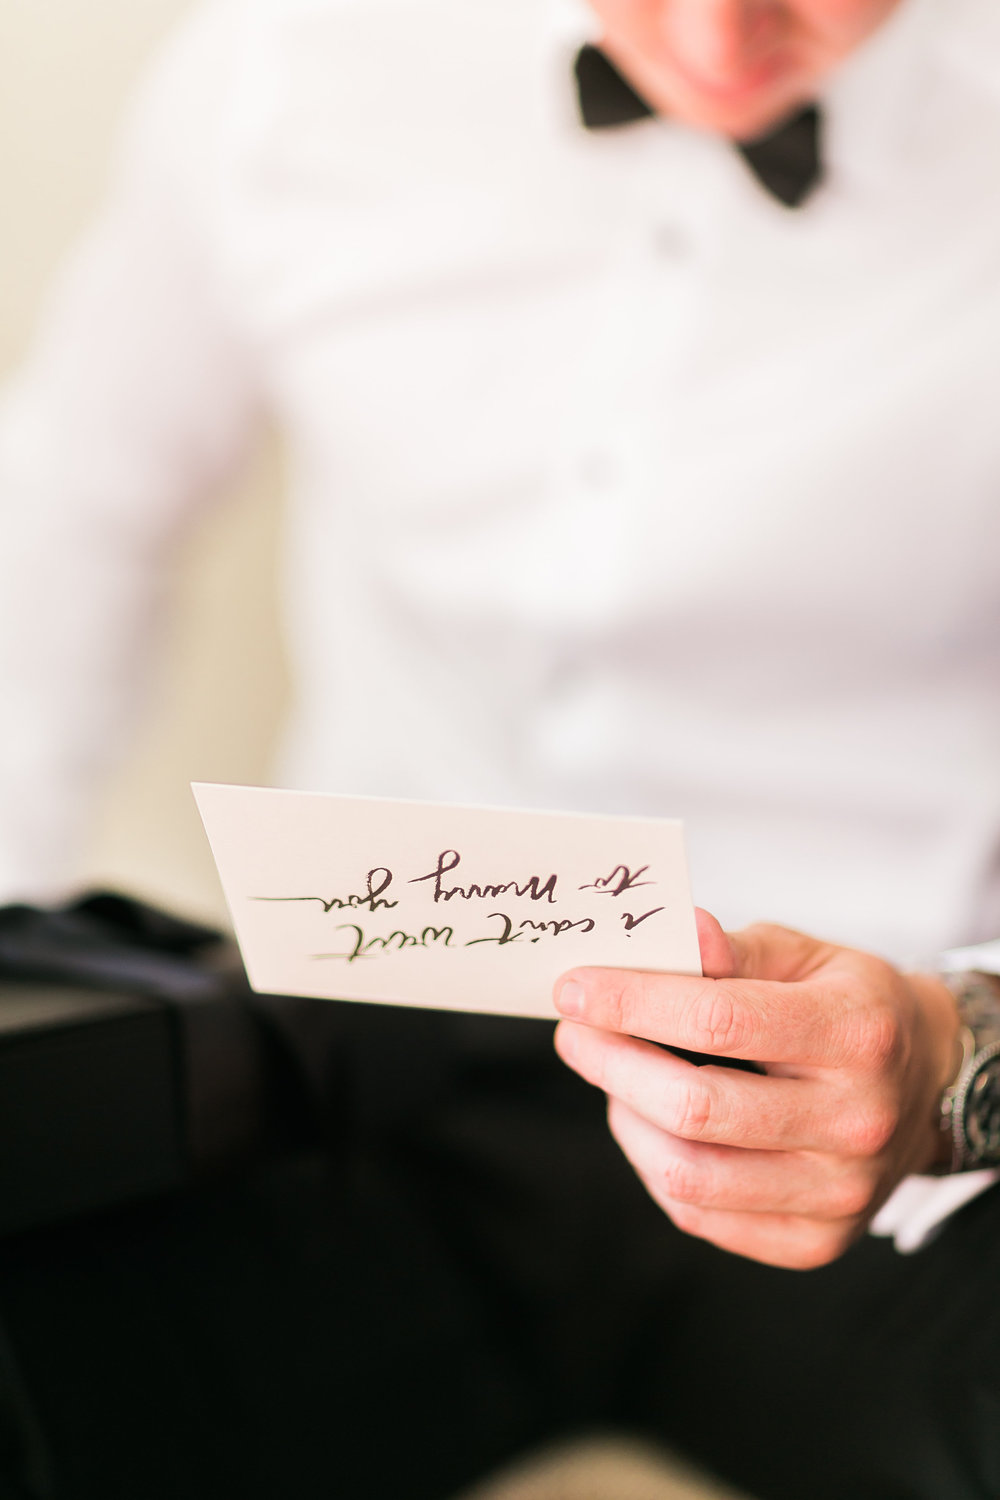 Groom reading a card from the bride.   CREDITS:  Destination Wedding Planner  ANDREA EPPOLITO EVENTS  · Images by  J.ANNE P  HOTOGRAPHY  · Video  HOO FILMS  · Venue Ritz Carlton Bacara Santa Barbara ·Gown  MONIQUE LHULLIER ·Bridesmaids Dresses  SHOW ME YOUR MUMU ·Stationery  SHE PAPERIE ·Bride's Shoes  BADGLEY MISCHKA ·Hair and Makeup  TEAM HAIR AND MAKEUP · Floral  BLUE MAGNOLIA ·Linen  LA TAVOLA ·Decor Rentals  TENT MERCHANT ·Calligraphy  EBB ·Lighting  FIVE STAR AV ·Ice Cream Station  MCCONNELL'S ICE CREAM